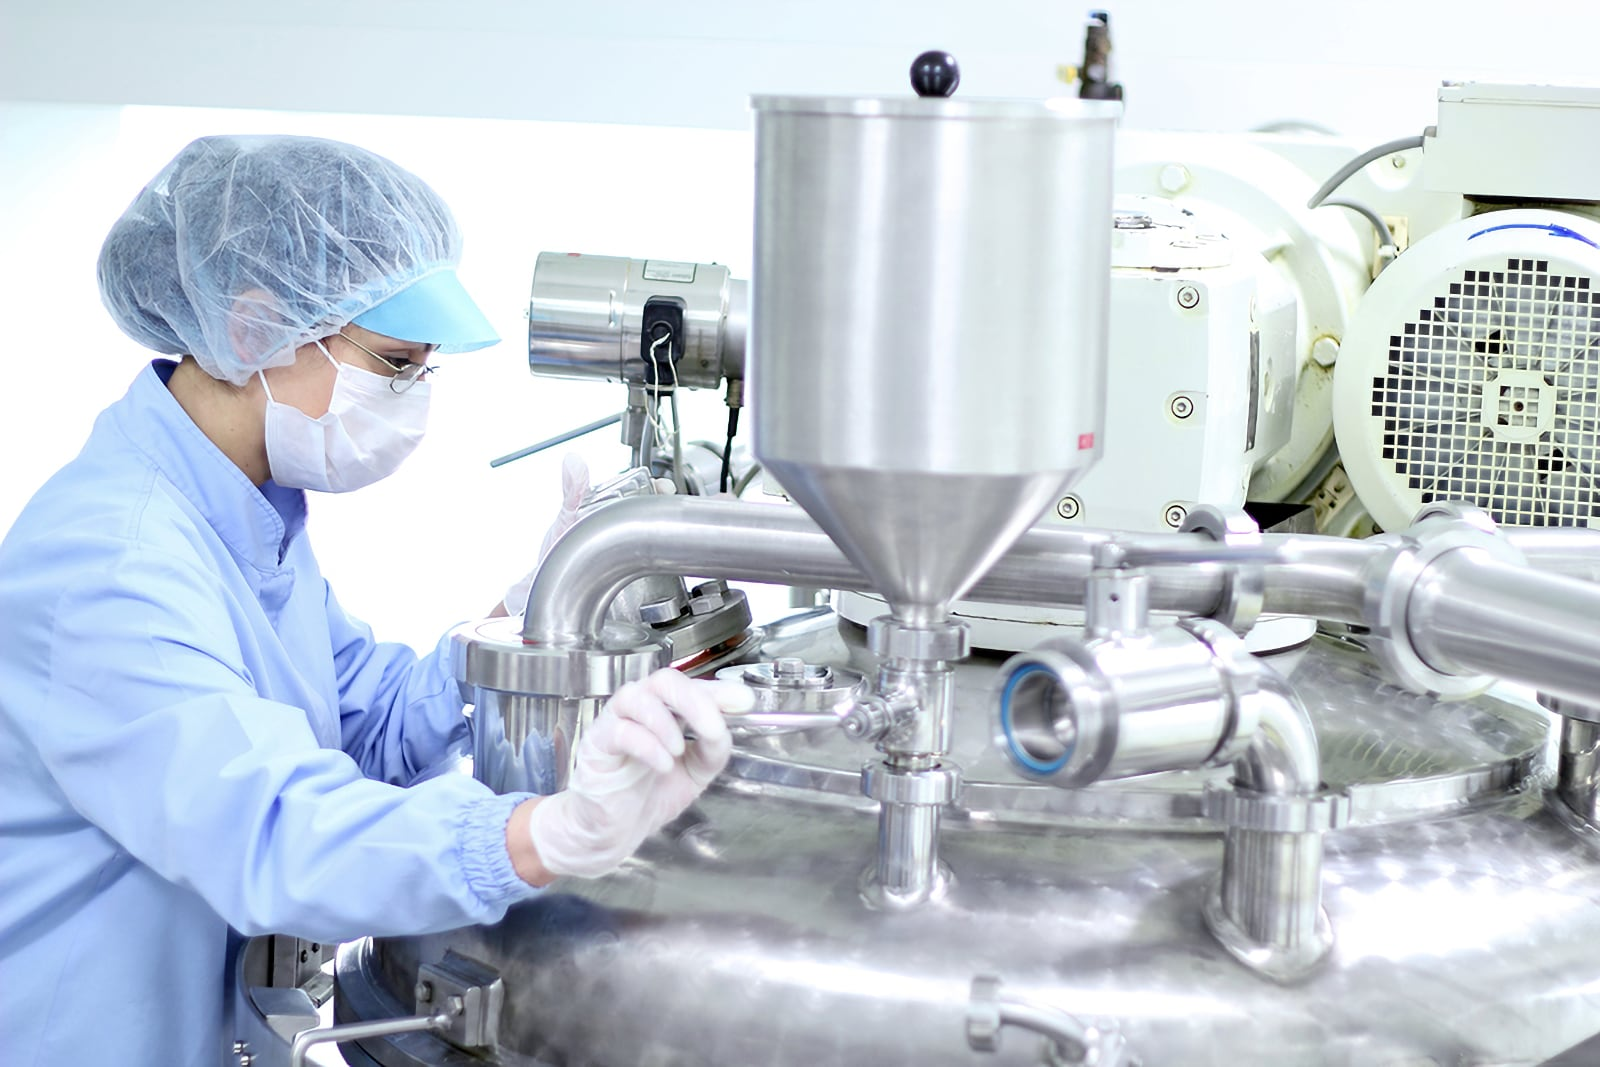 Photo of pharmaceutical worker with facemask, hair net, gown, and gloves, processing chemicals working at an industrial machine